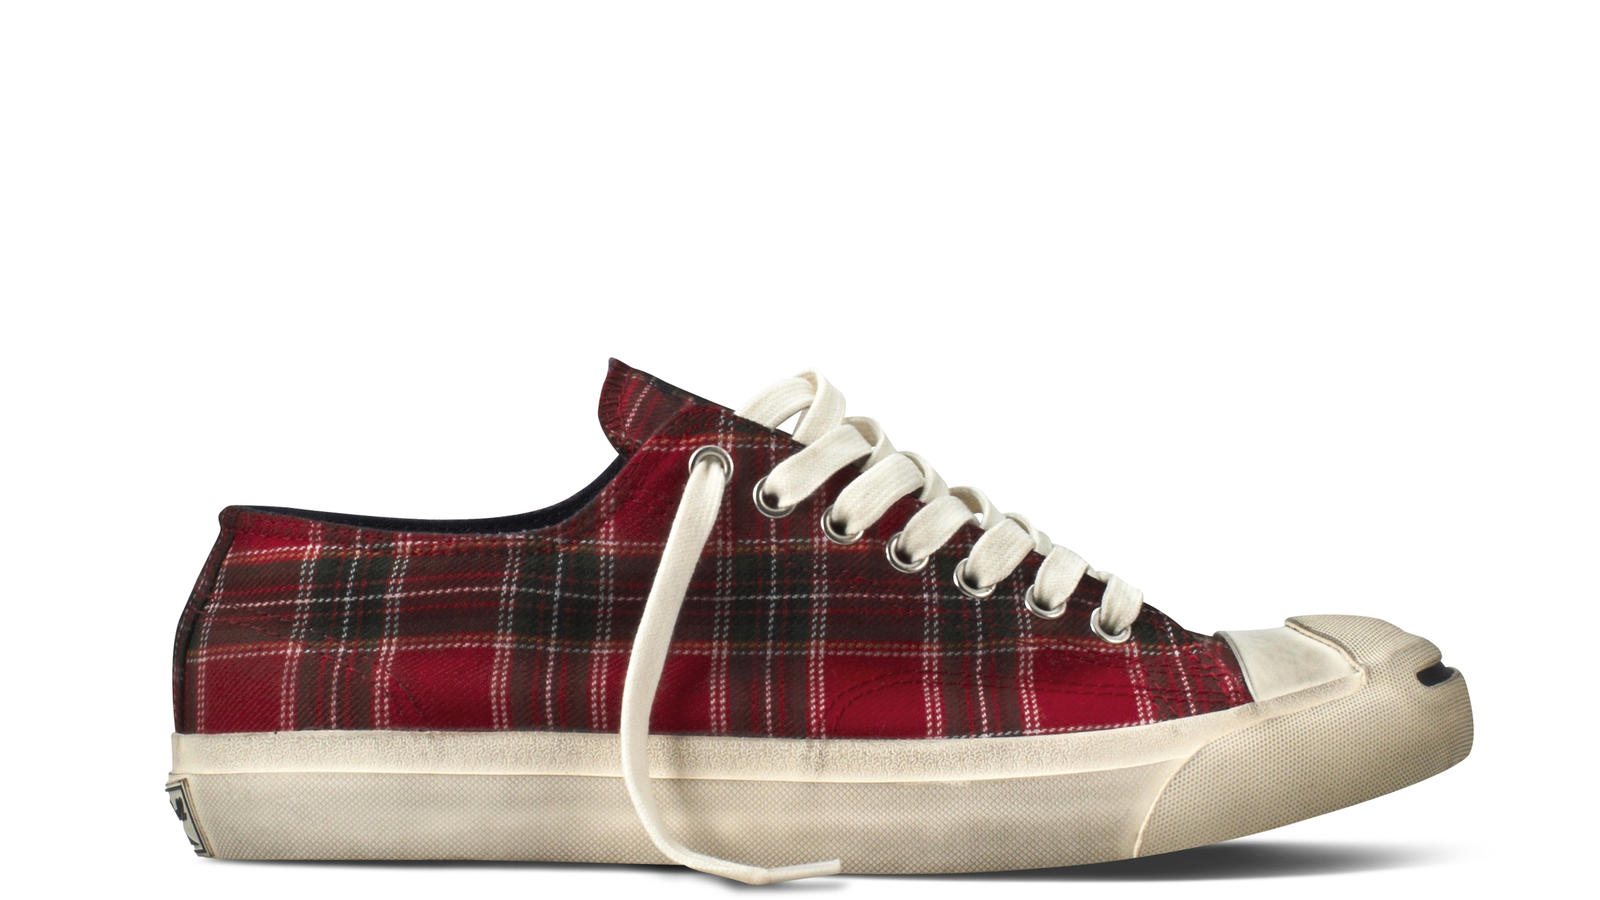 8a591d1d178909 Converse announces the launch of Holiday 2011 collections - Nike News